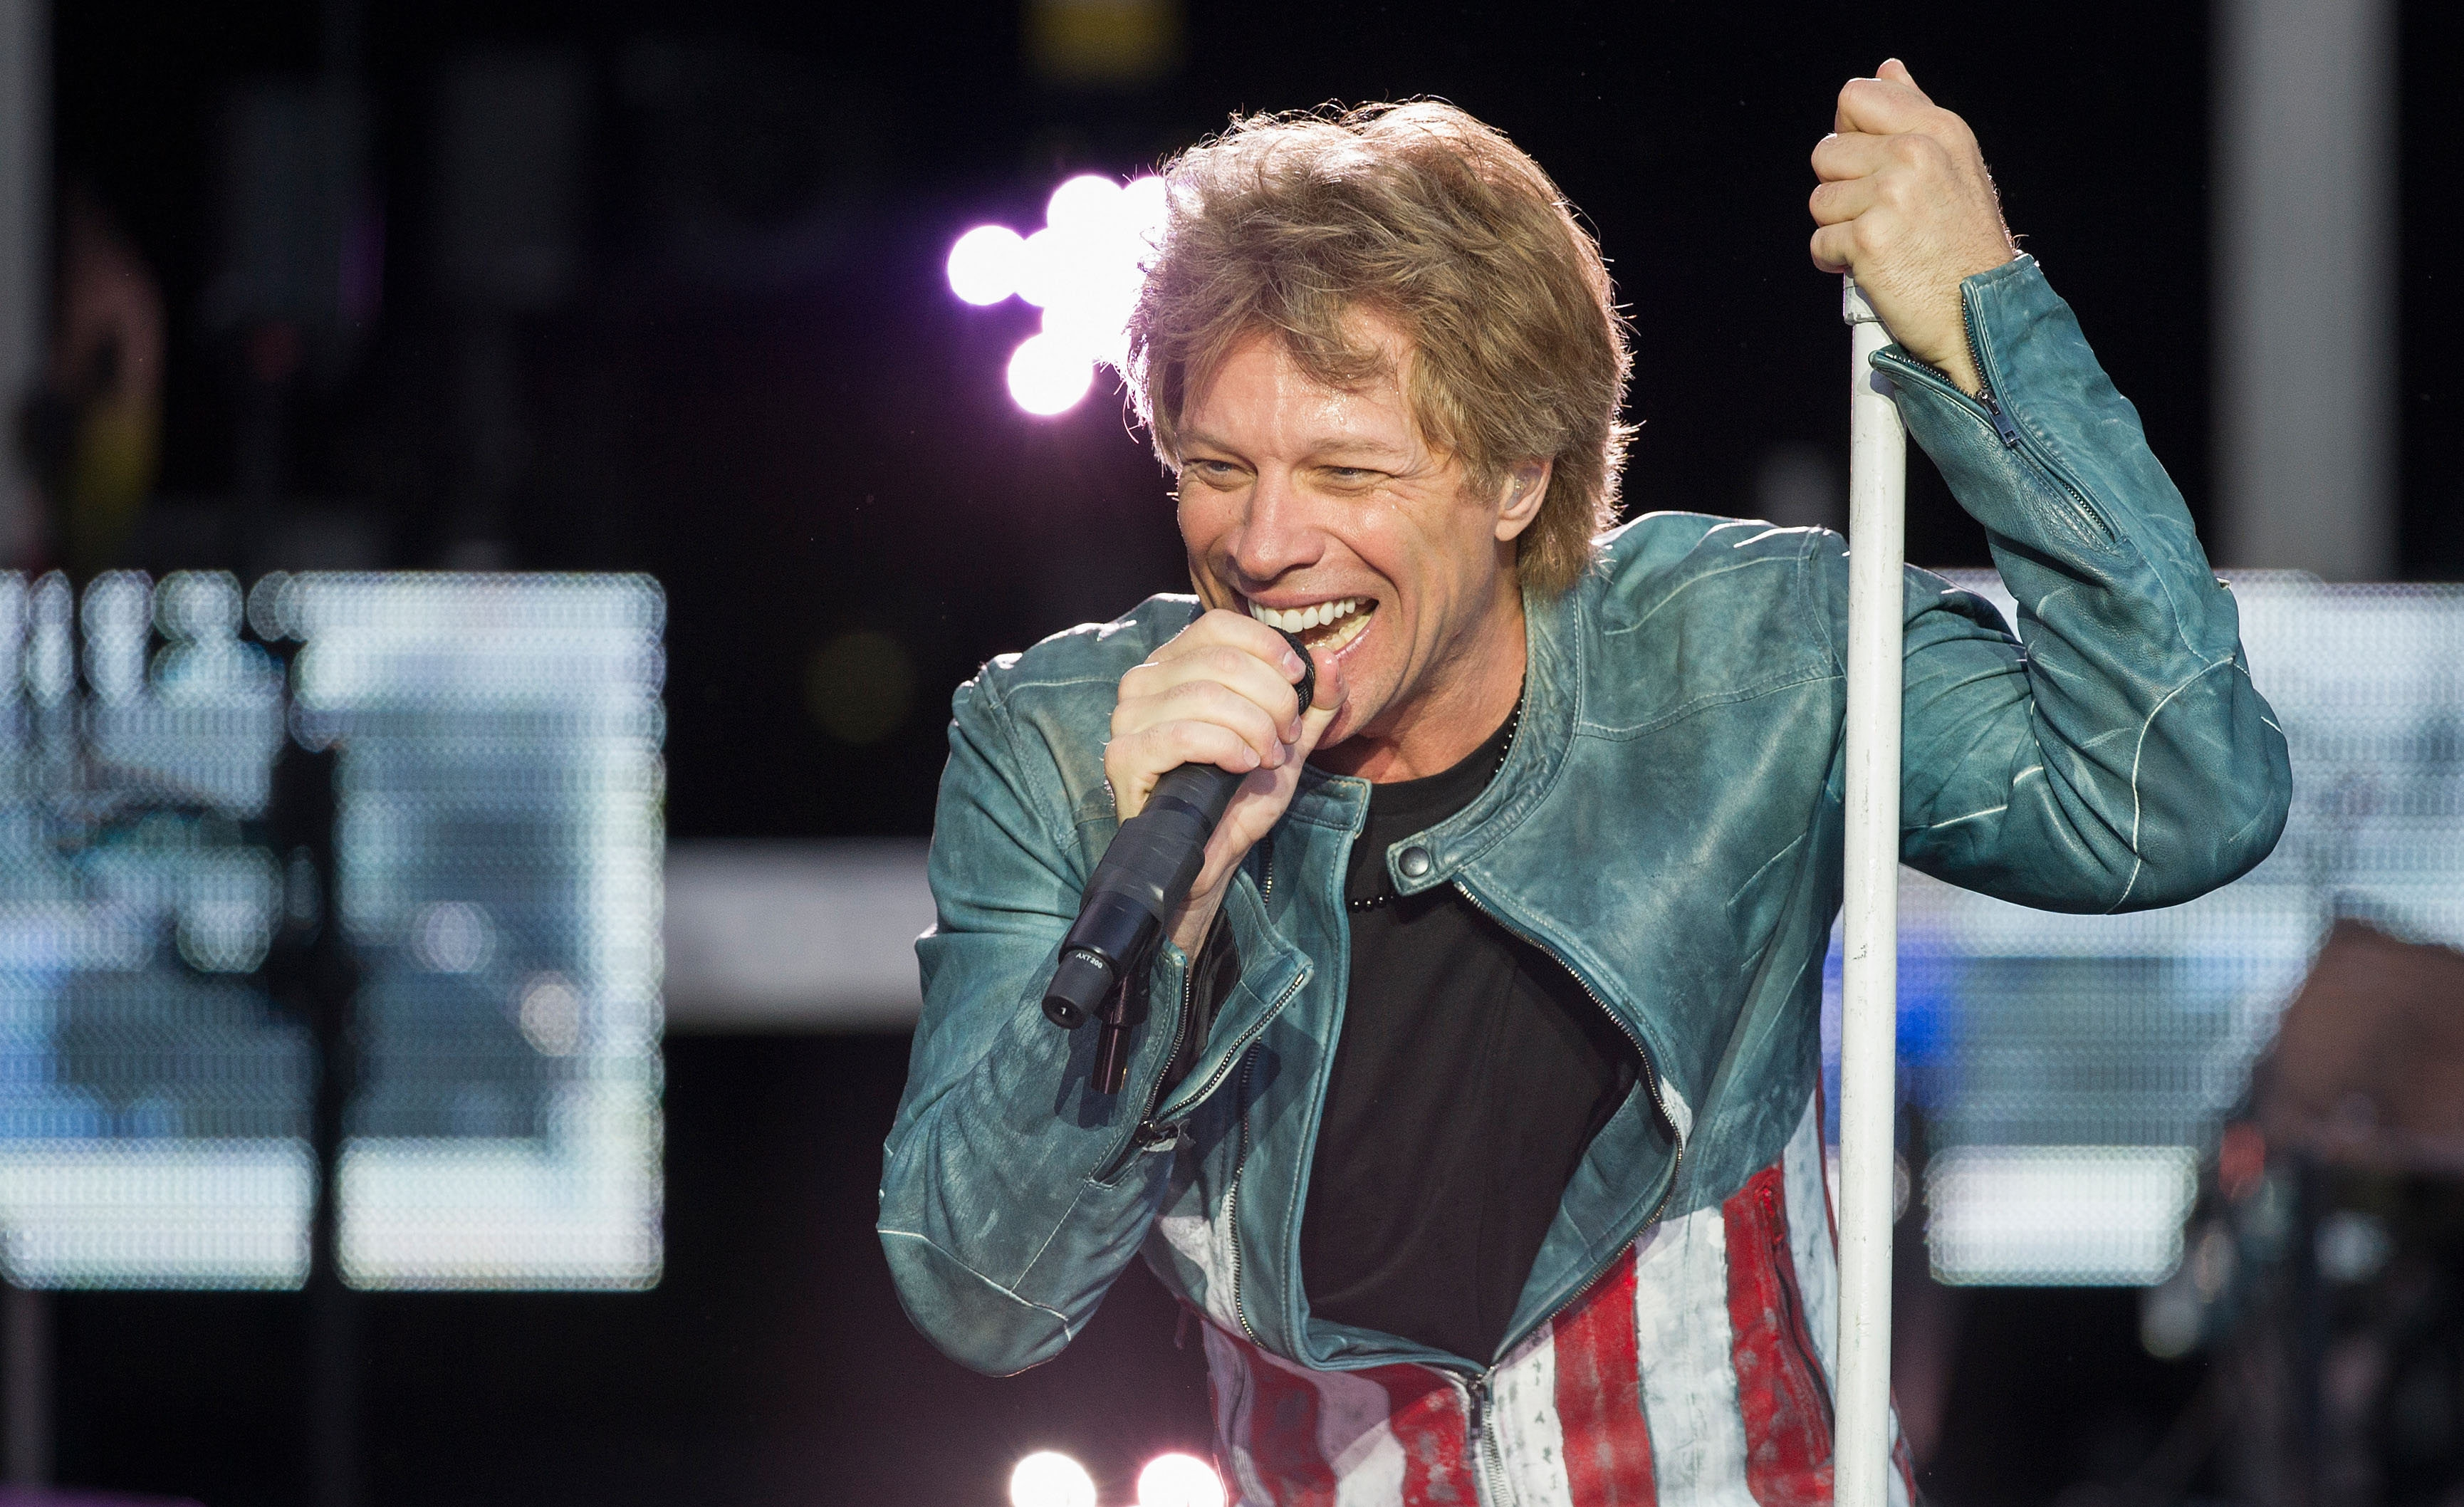 Jon Bon Jovi joins list of names that are being circulated as potential future owners of the Buffalo Bills.